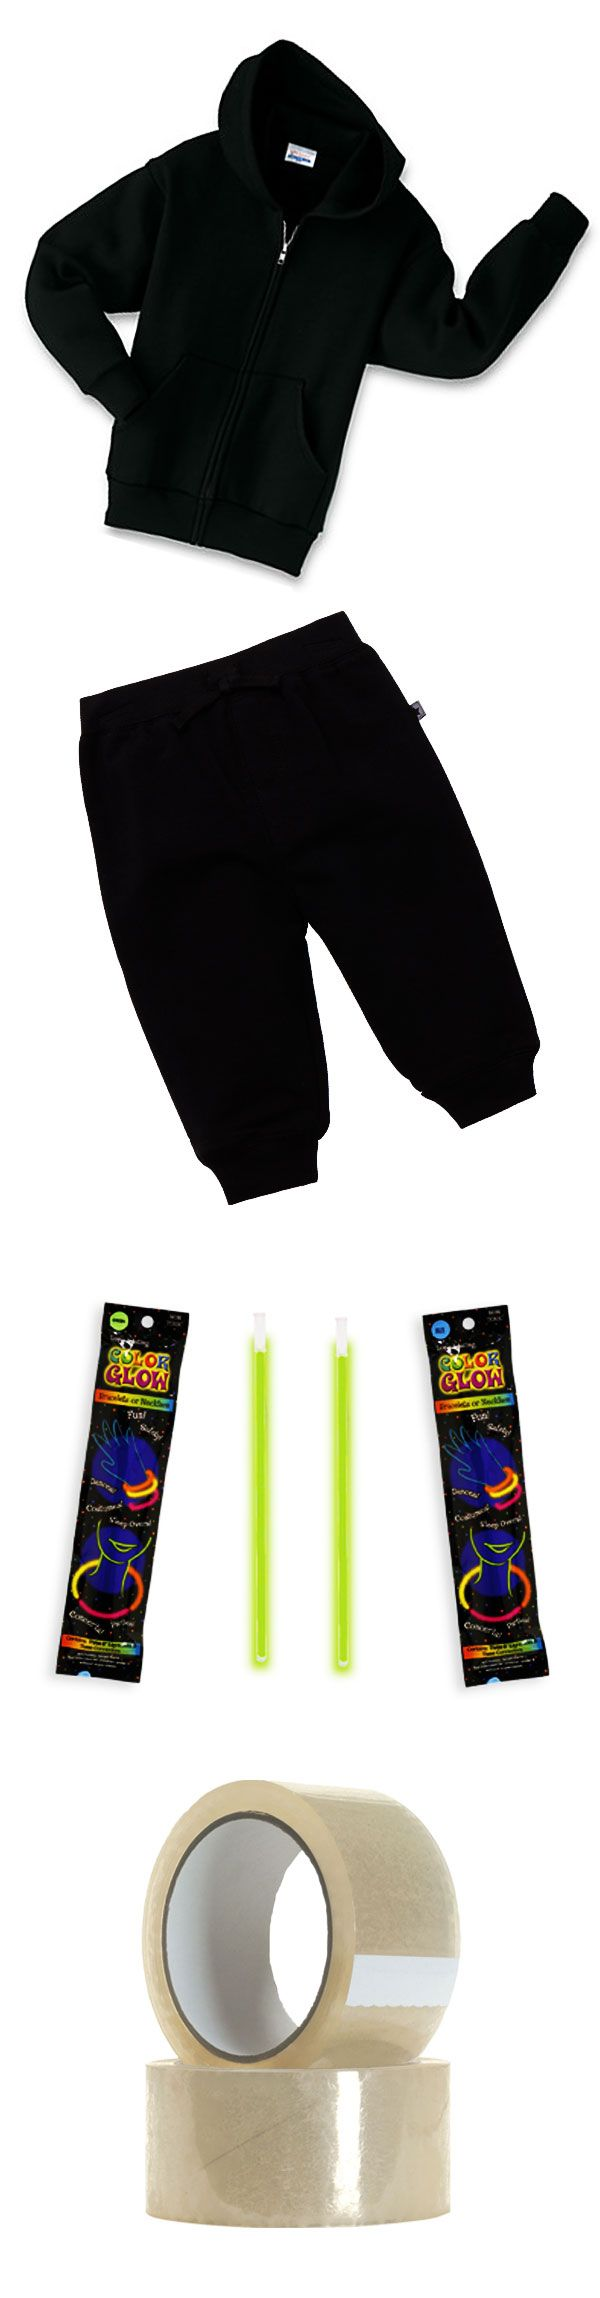 glow-stick-costume-diy-materials-needed-ctr